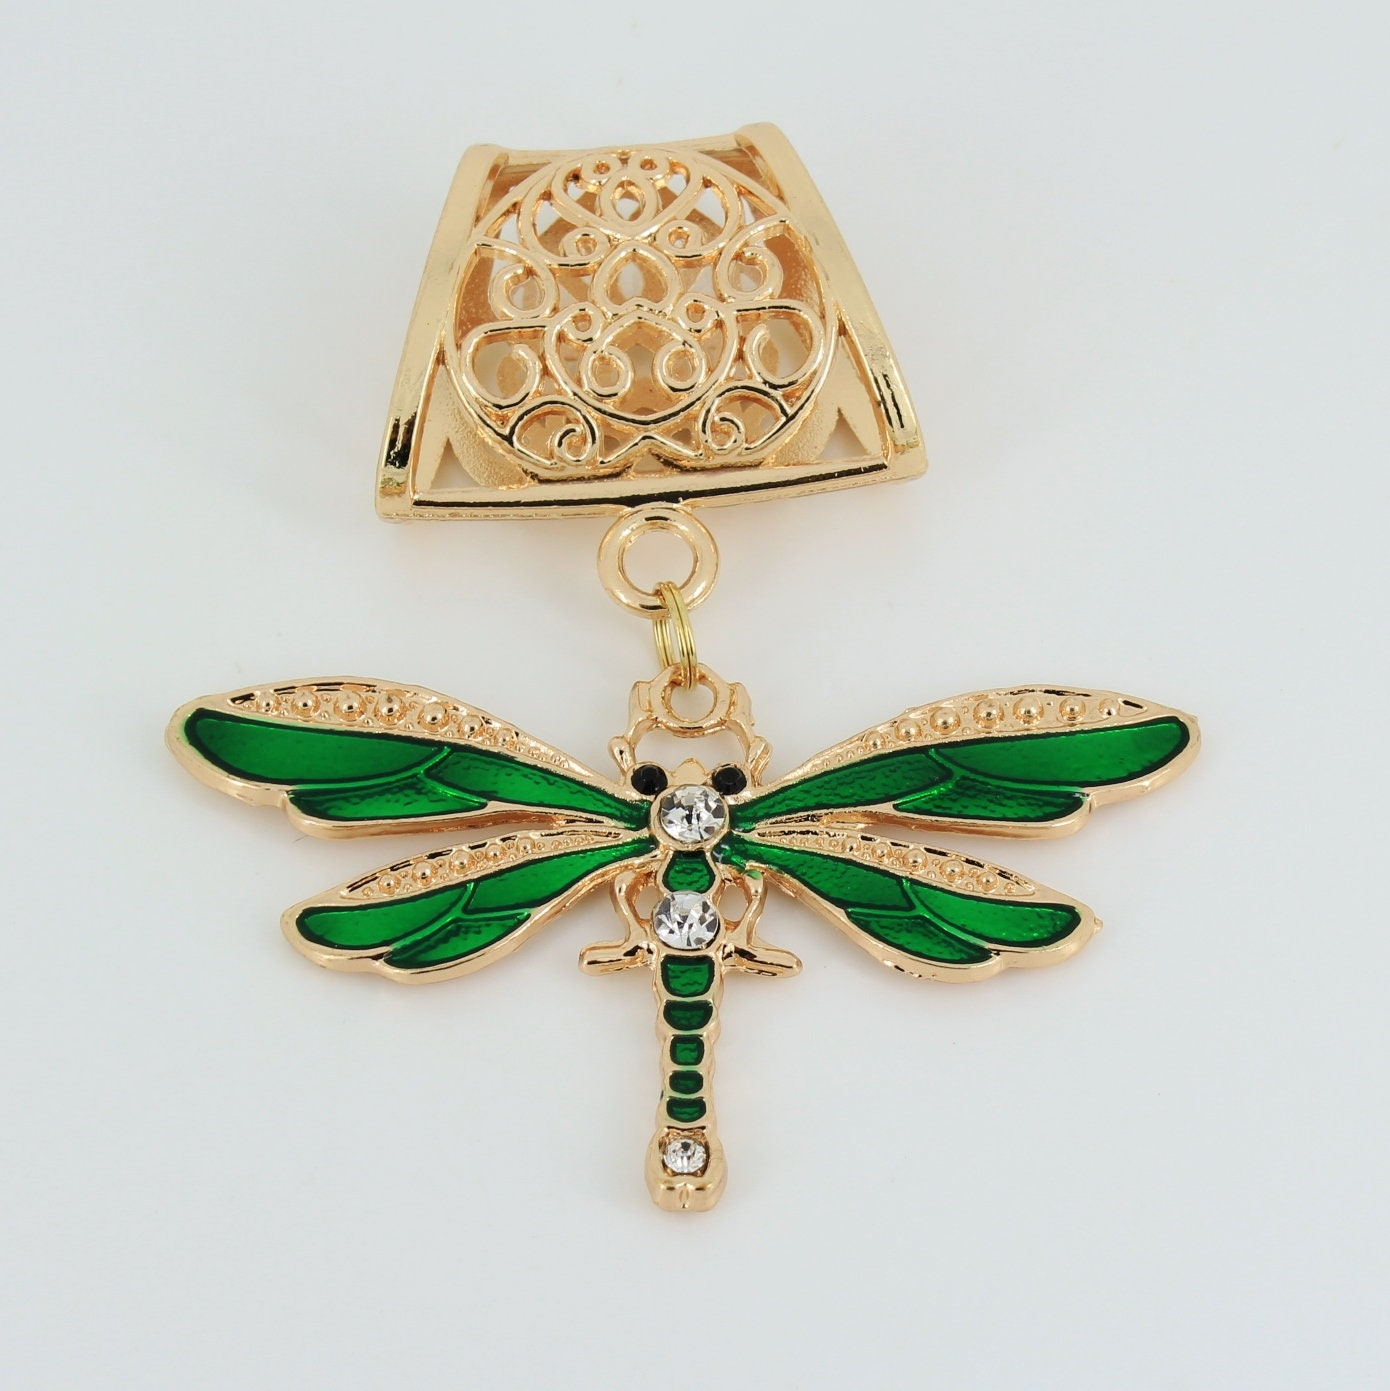 Dragonfly,Scarf,Pendant,,Gold,Slide,,Jewelry,,Charm,,Accessory,Accessories,scarf_pendant,scarf_charm,scarf_accessory,pendant_charm,fashion_accessory,heart,gold_finish,dragonfly_pendant,green_dragonfly,dragonfly_charm,Rhinestone_pendant,Green dragonfly pendant,Gold scarf slide,large jumpring